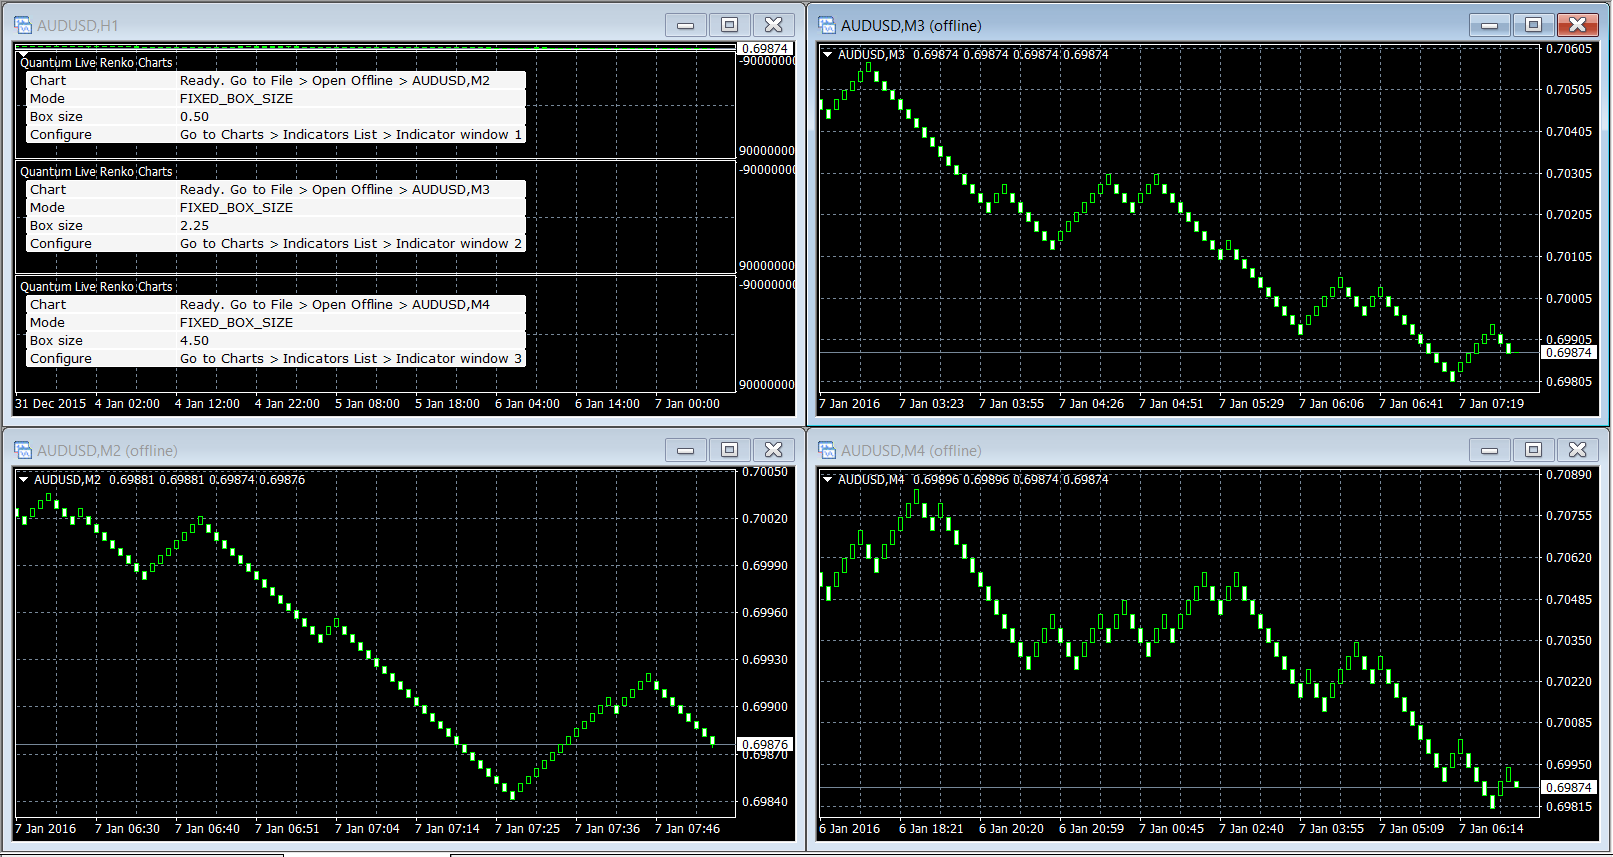 Live forex charts with indicators